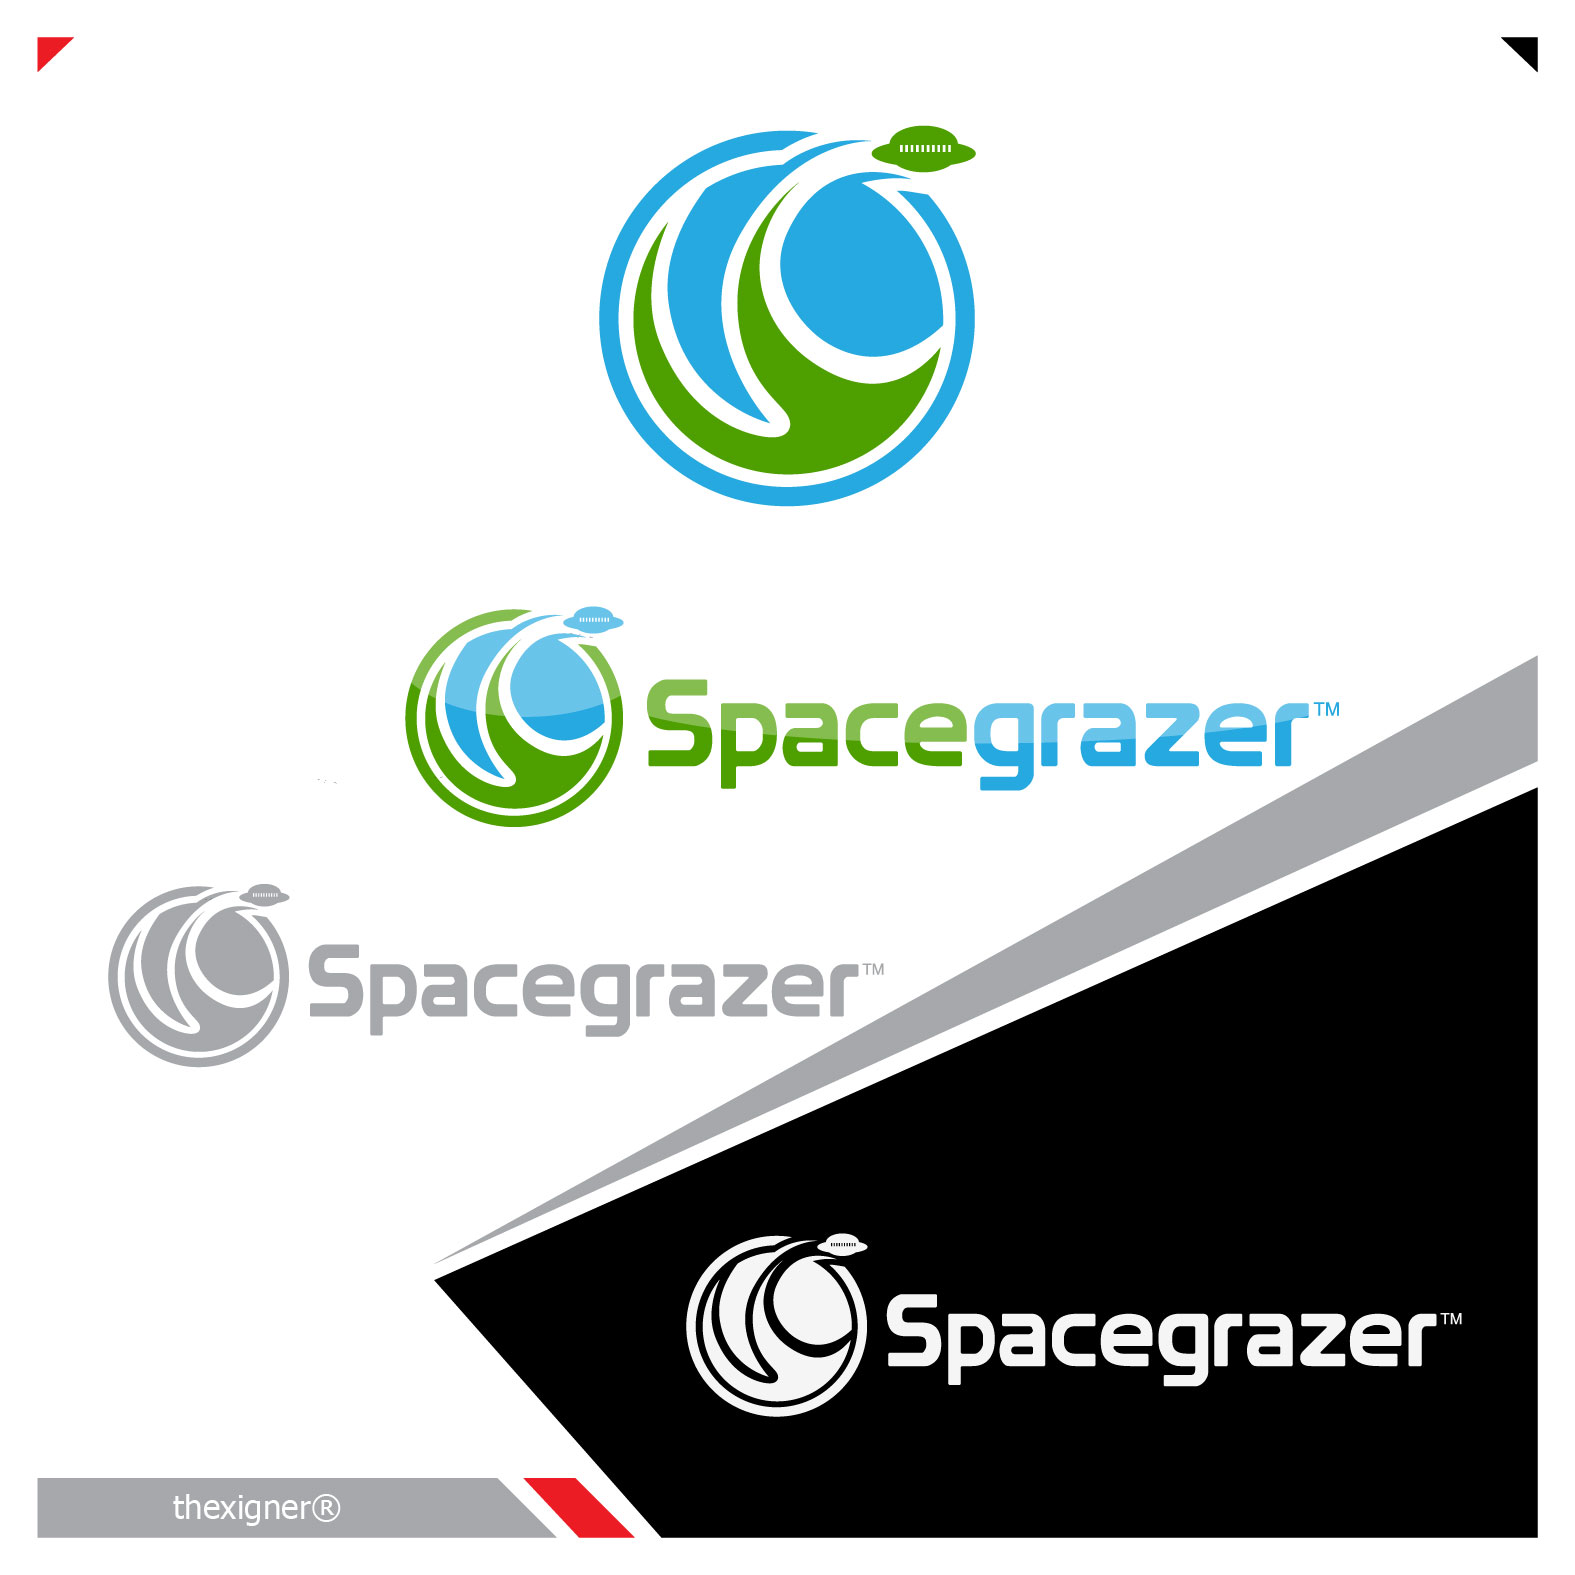 Logo Design by lagalag - Entry No. 148 in the Logo Design Contest Fun Logo Design for Spacegrazer.